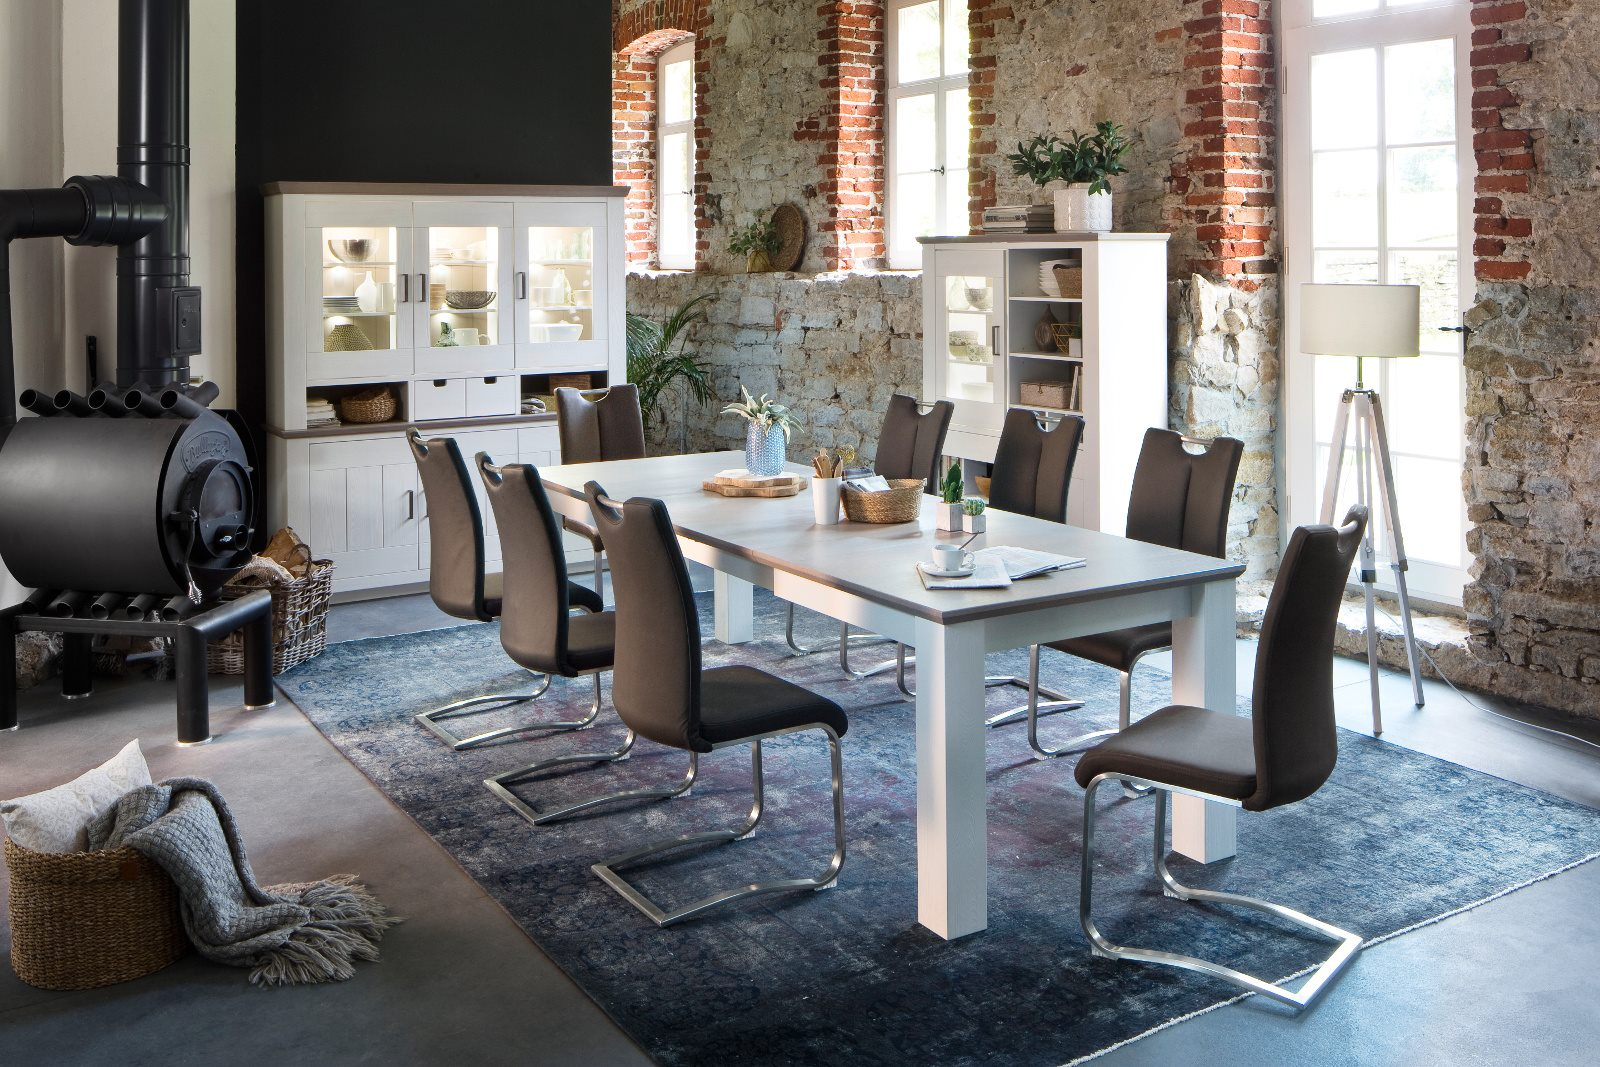 Which Type of Dining Table is Best?